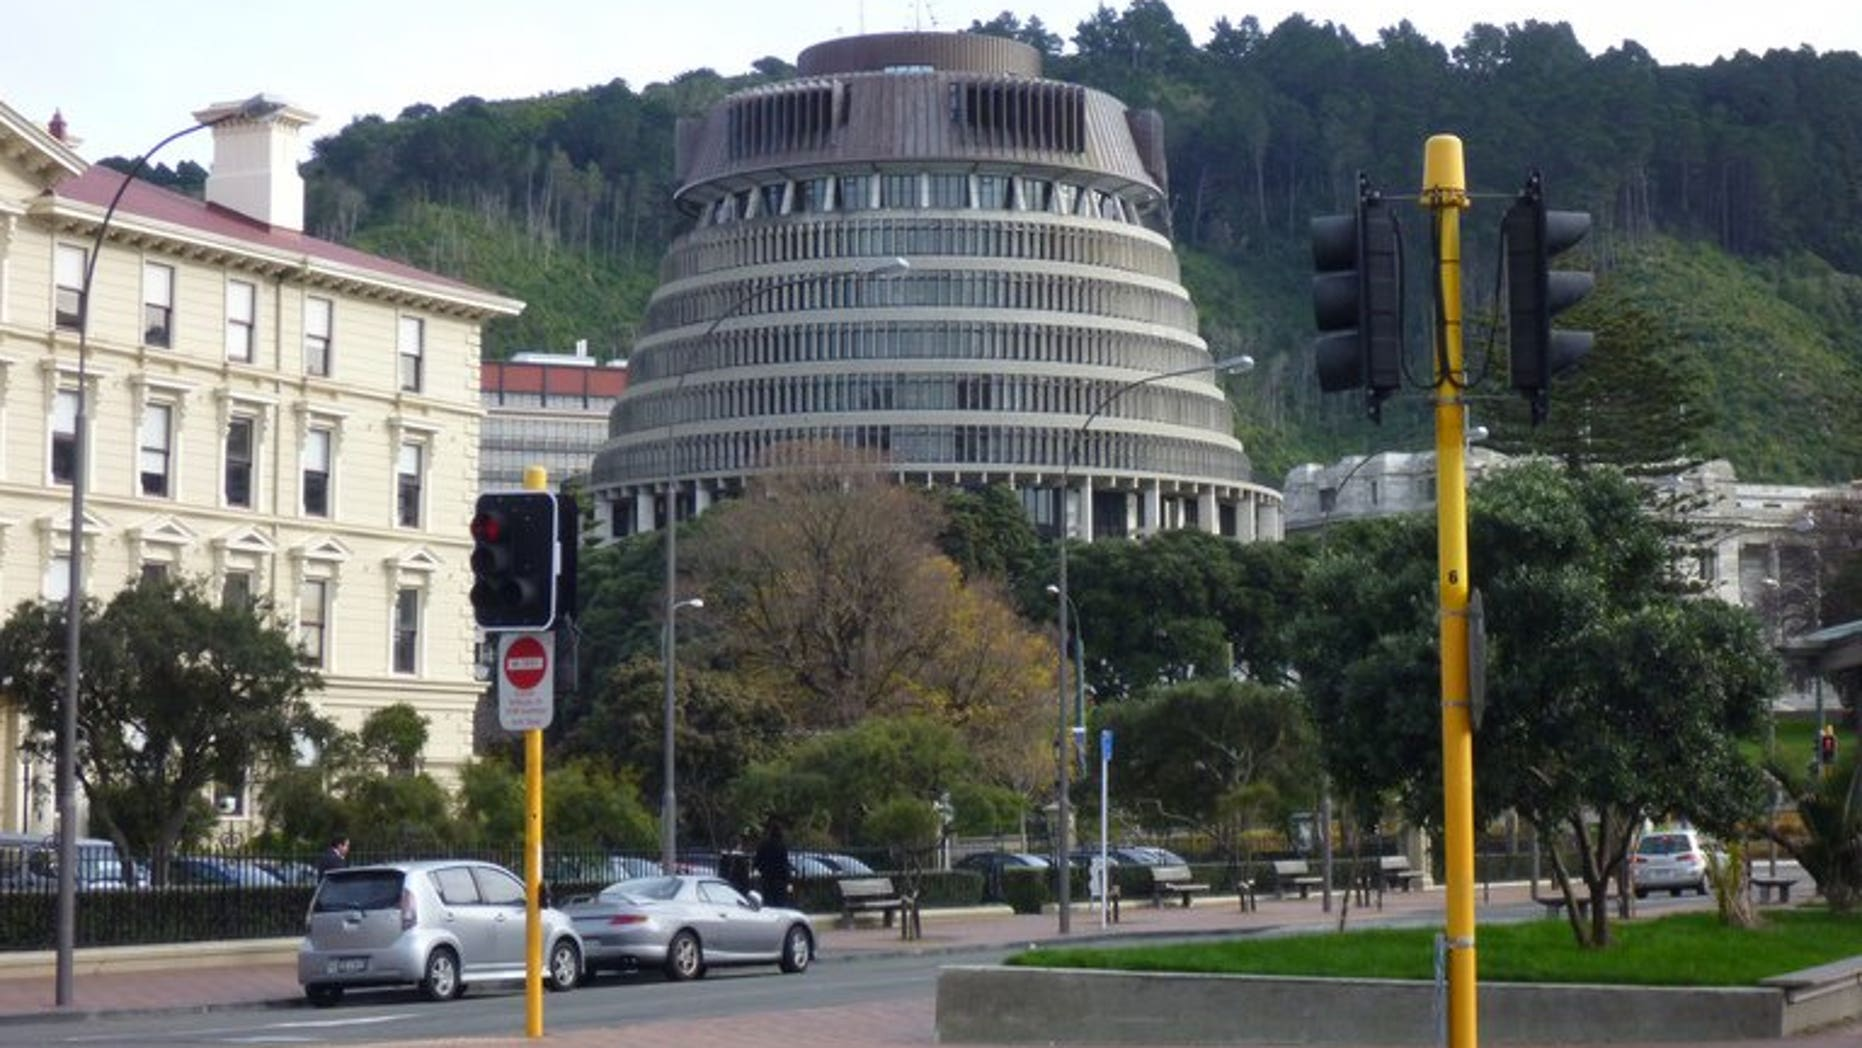 File photo of the New Zealand Parliament building in Wellington. New Zealand knows of Al-Qaeda-trained activists within the country who need to be monitored, Prime Minister John Key said Thursday amid debate on the need for stronger spy laws.